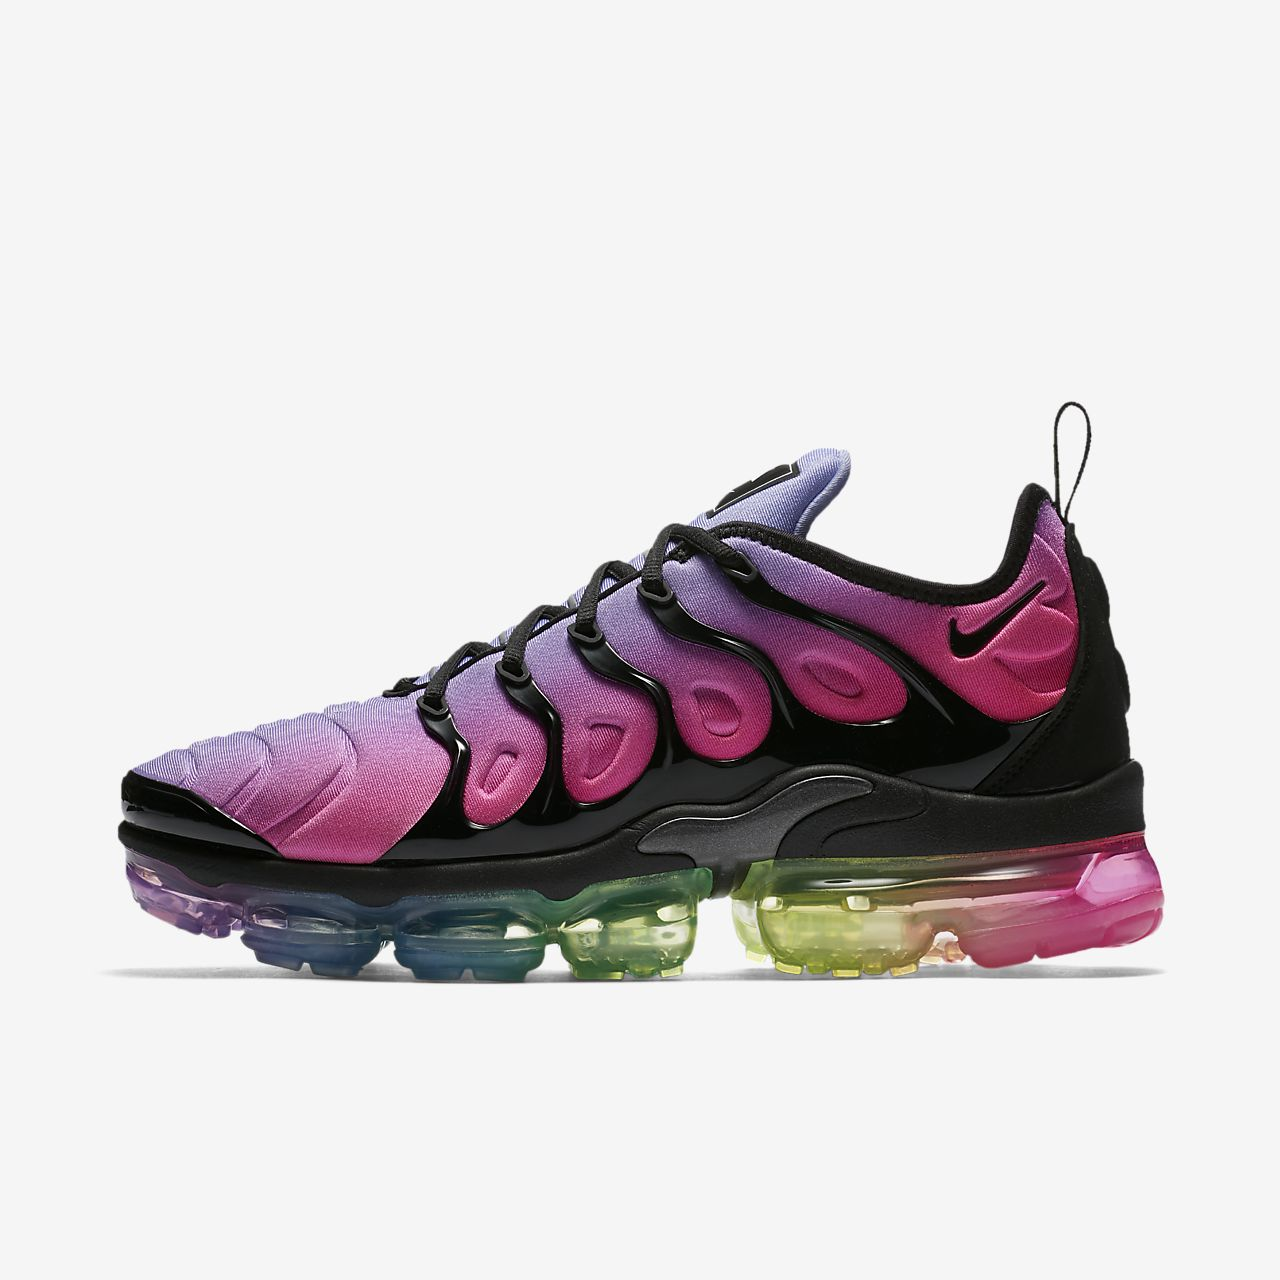 0d9fa5480f2ee Chaussure Nike Air VaporMax Plus BETRUE pour Homme. Nike.com CA